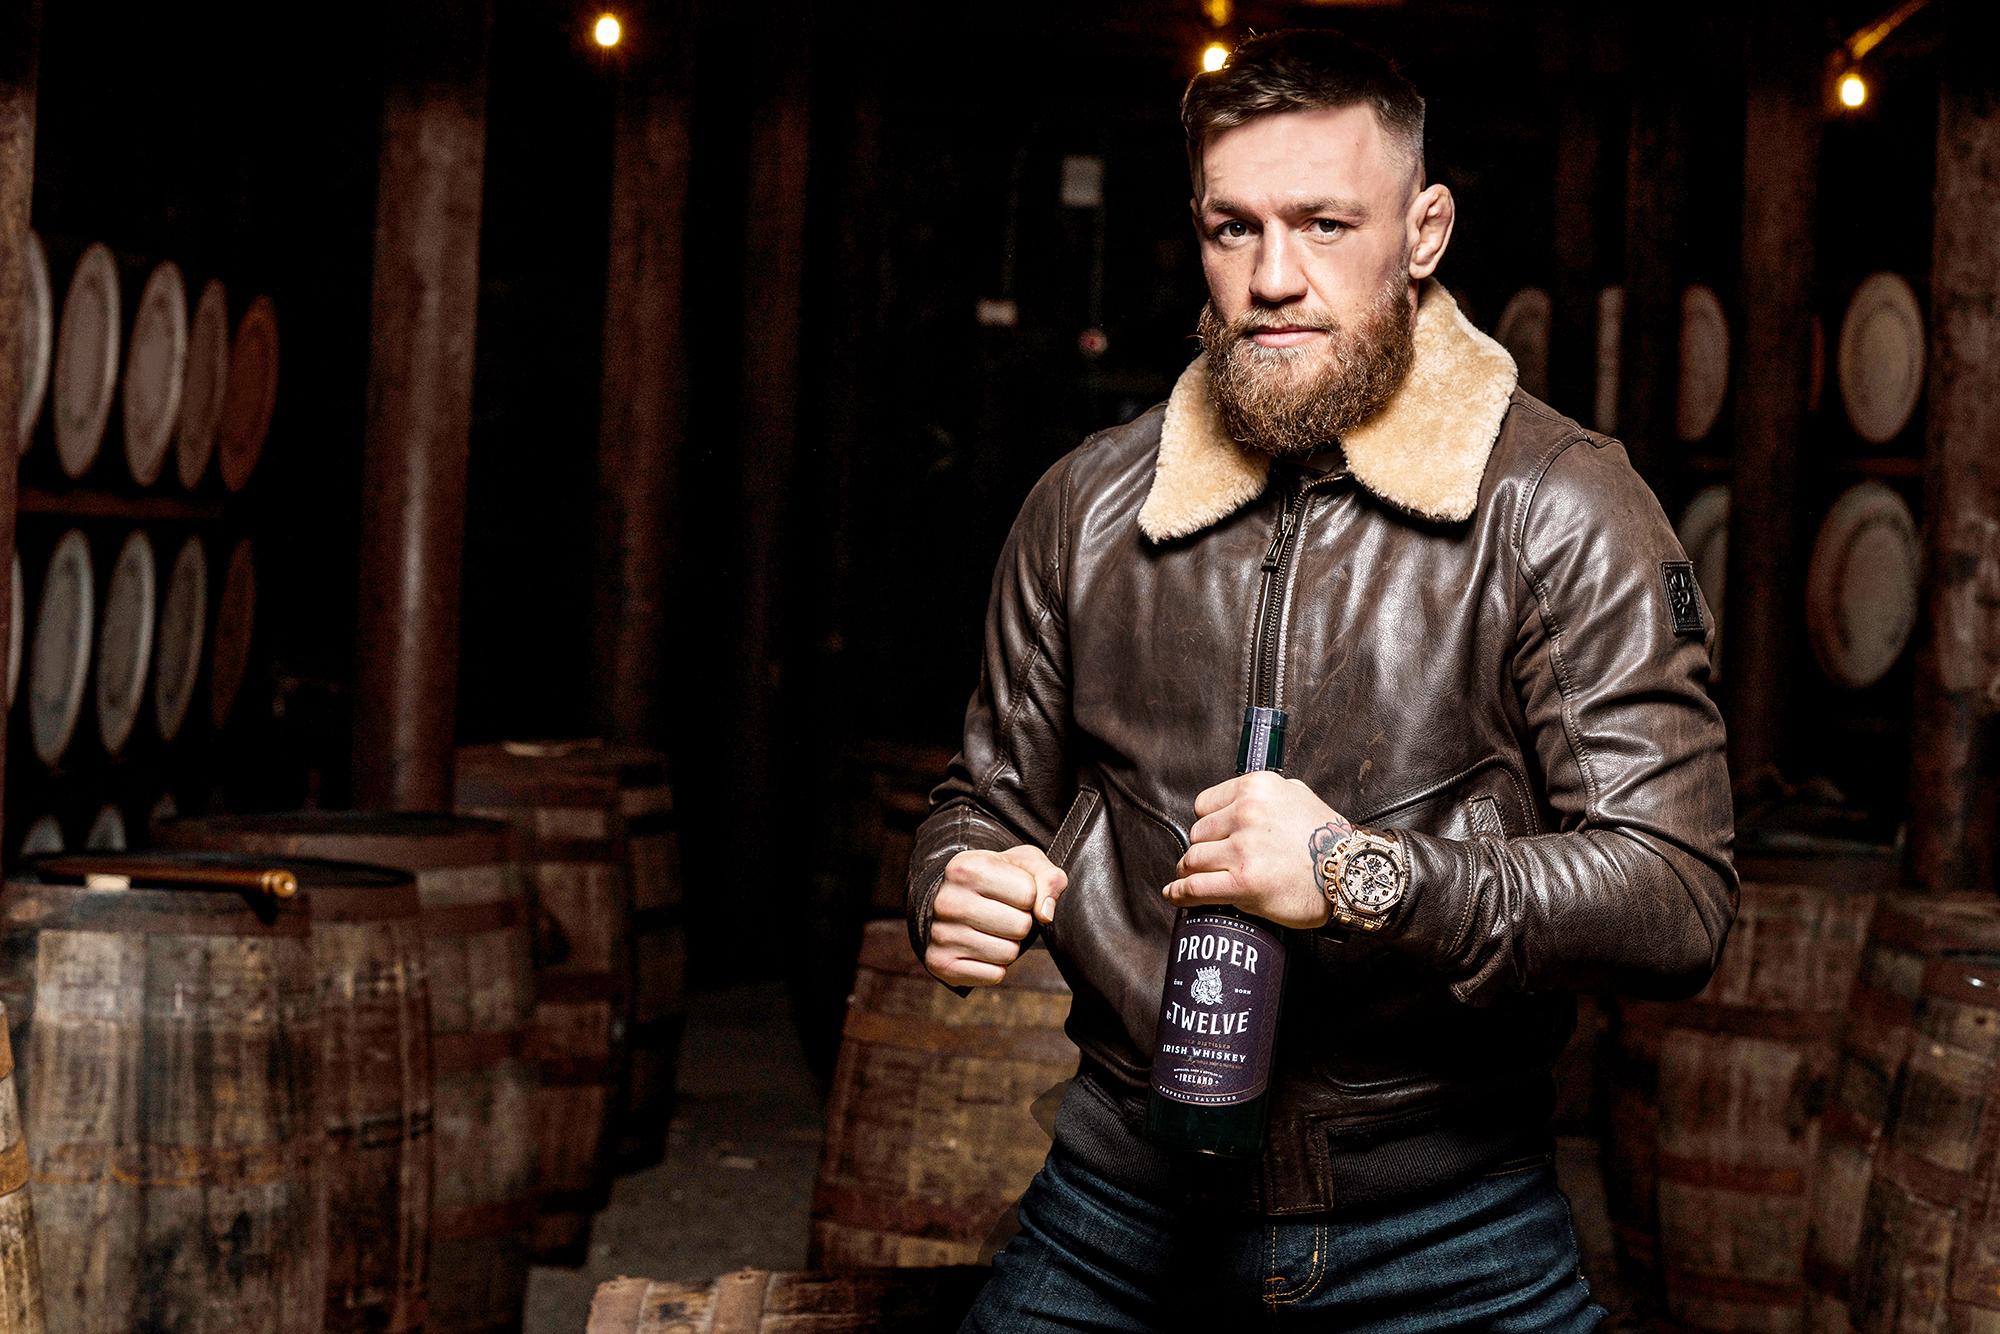 Conor McGregor roper No. Twelve Whiskey Out Of Stock